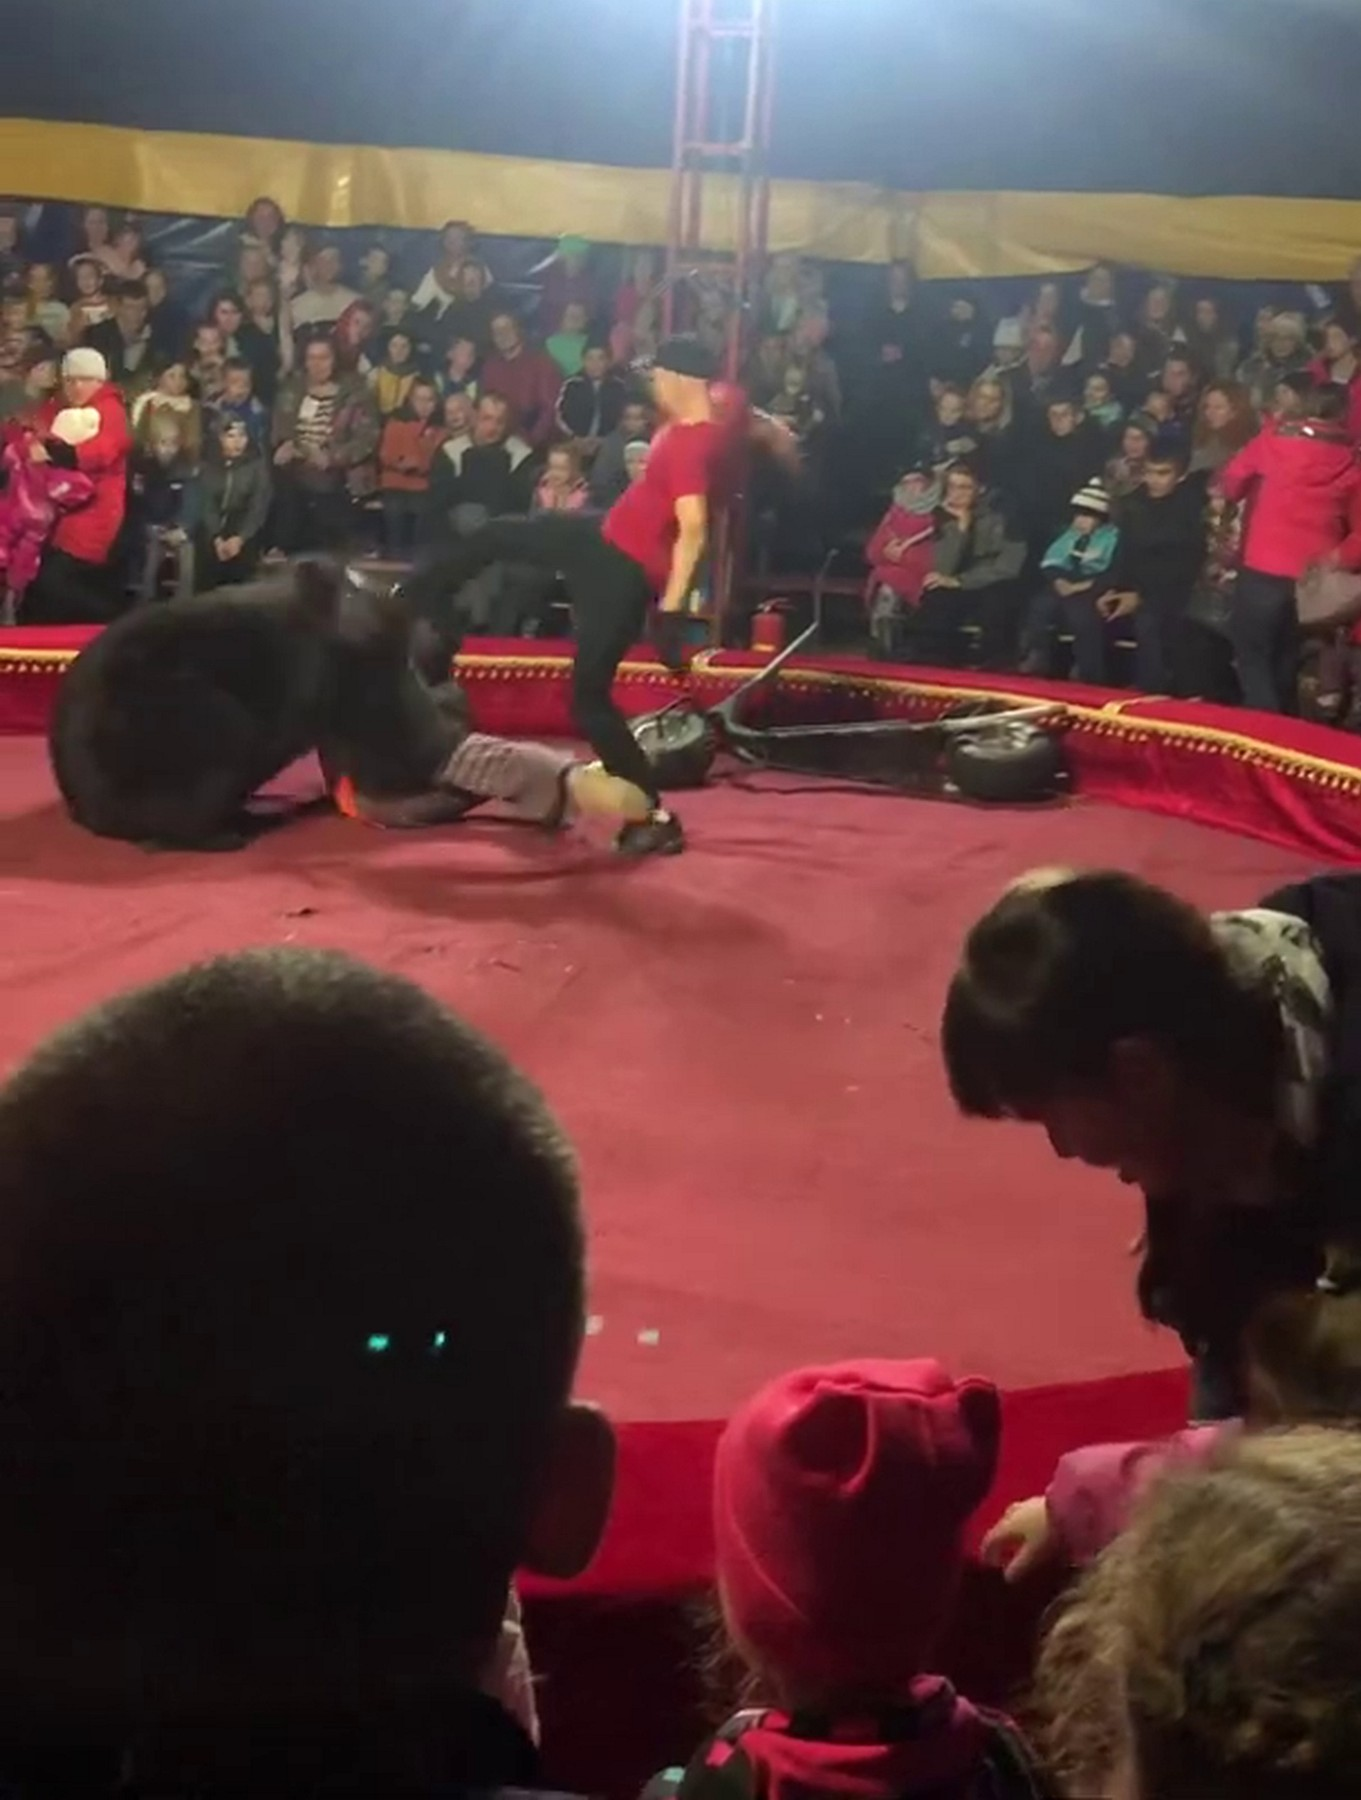 Bear attacked the trainer during the performance in the tent circus in Olonets town of Karelia republic., Image: 478855302, License: Rights-managed, Restrictions: , Model Release: no, Credit line: Anna Liesowska / east2west news / East2West News / Profimedia